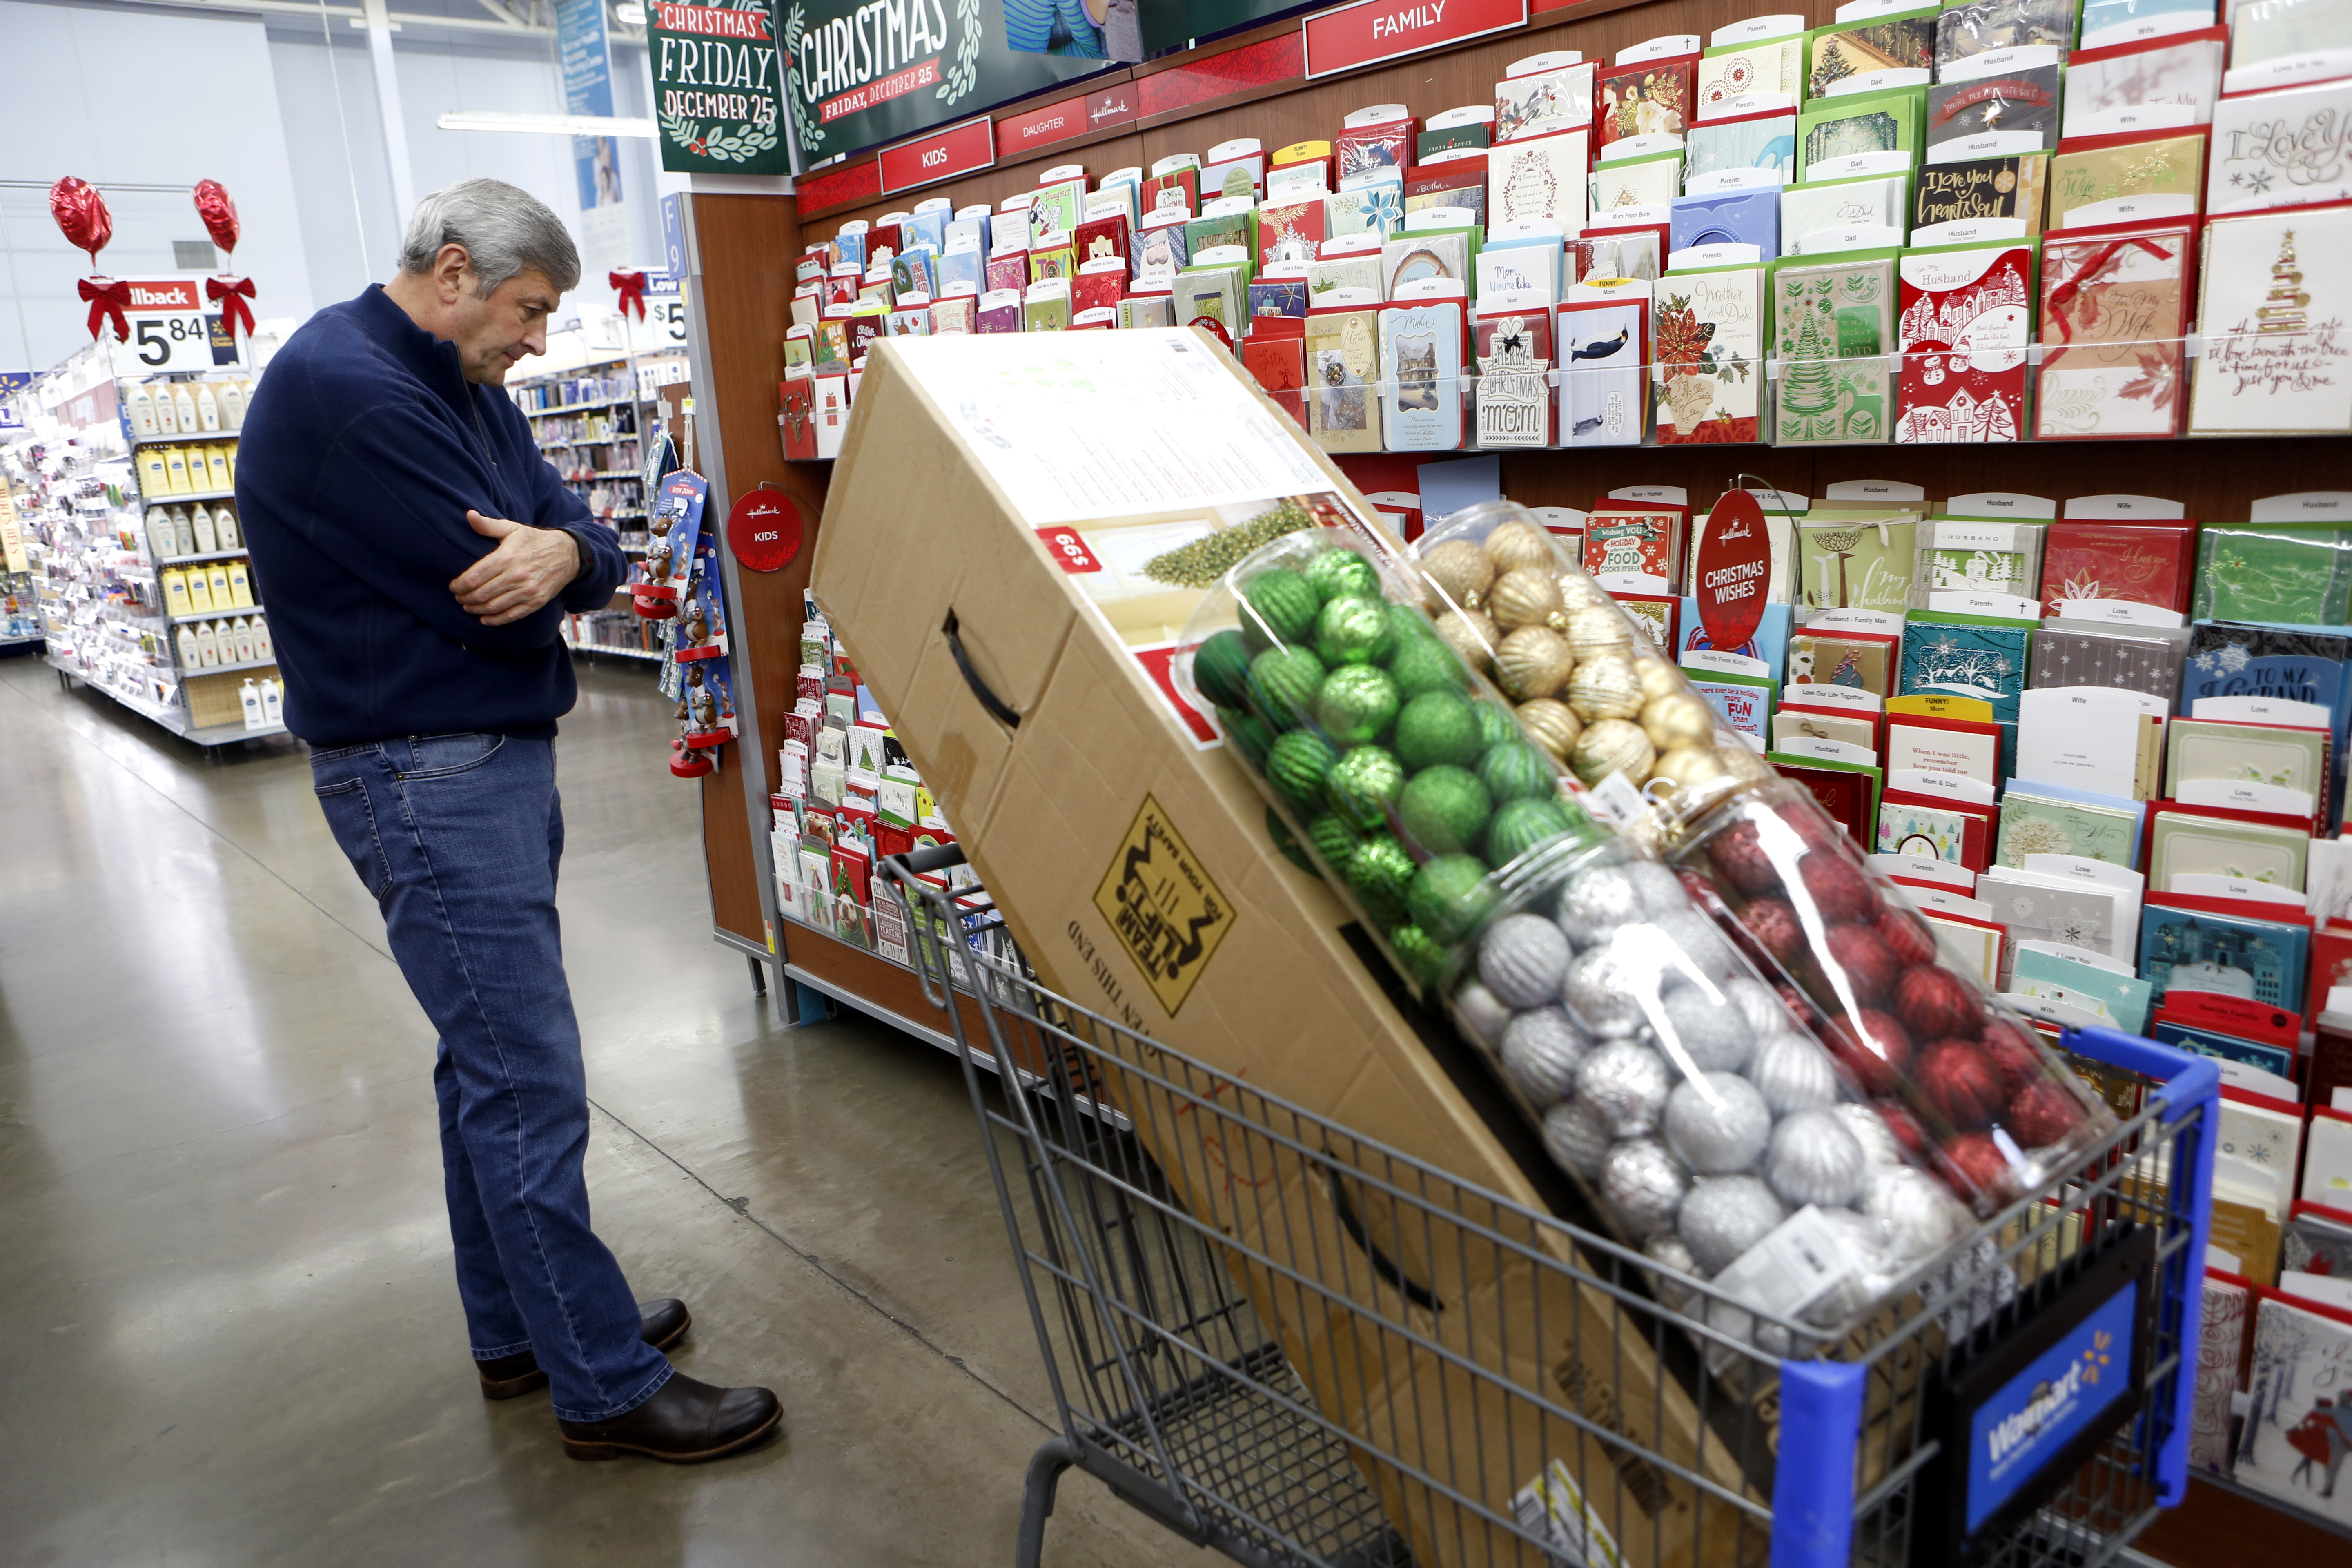 Bob Roe looks for Christmas cards after selecting a Christmas tree and ornaments while shopping at Walmart in Dallas. Photo/Lara Solt